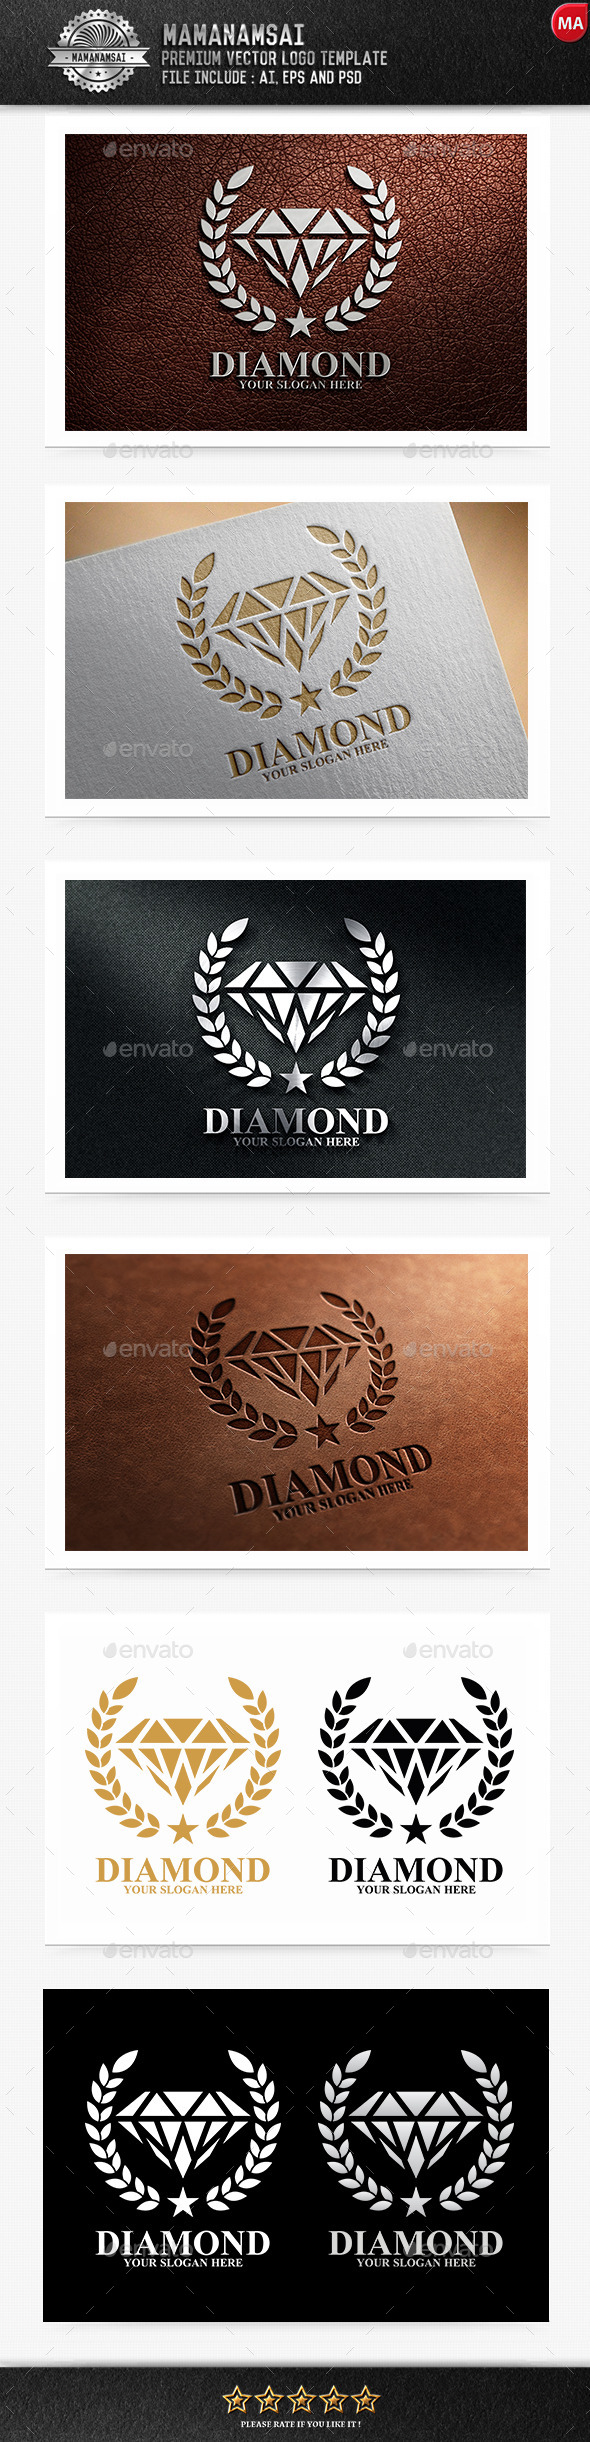 Diamond Logo - Logo Templates